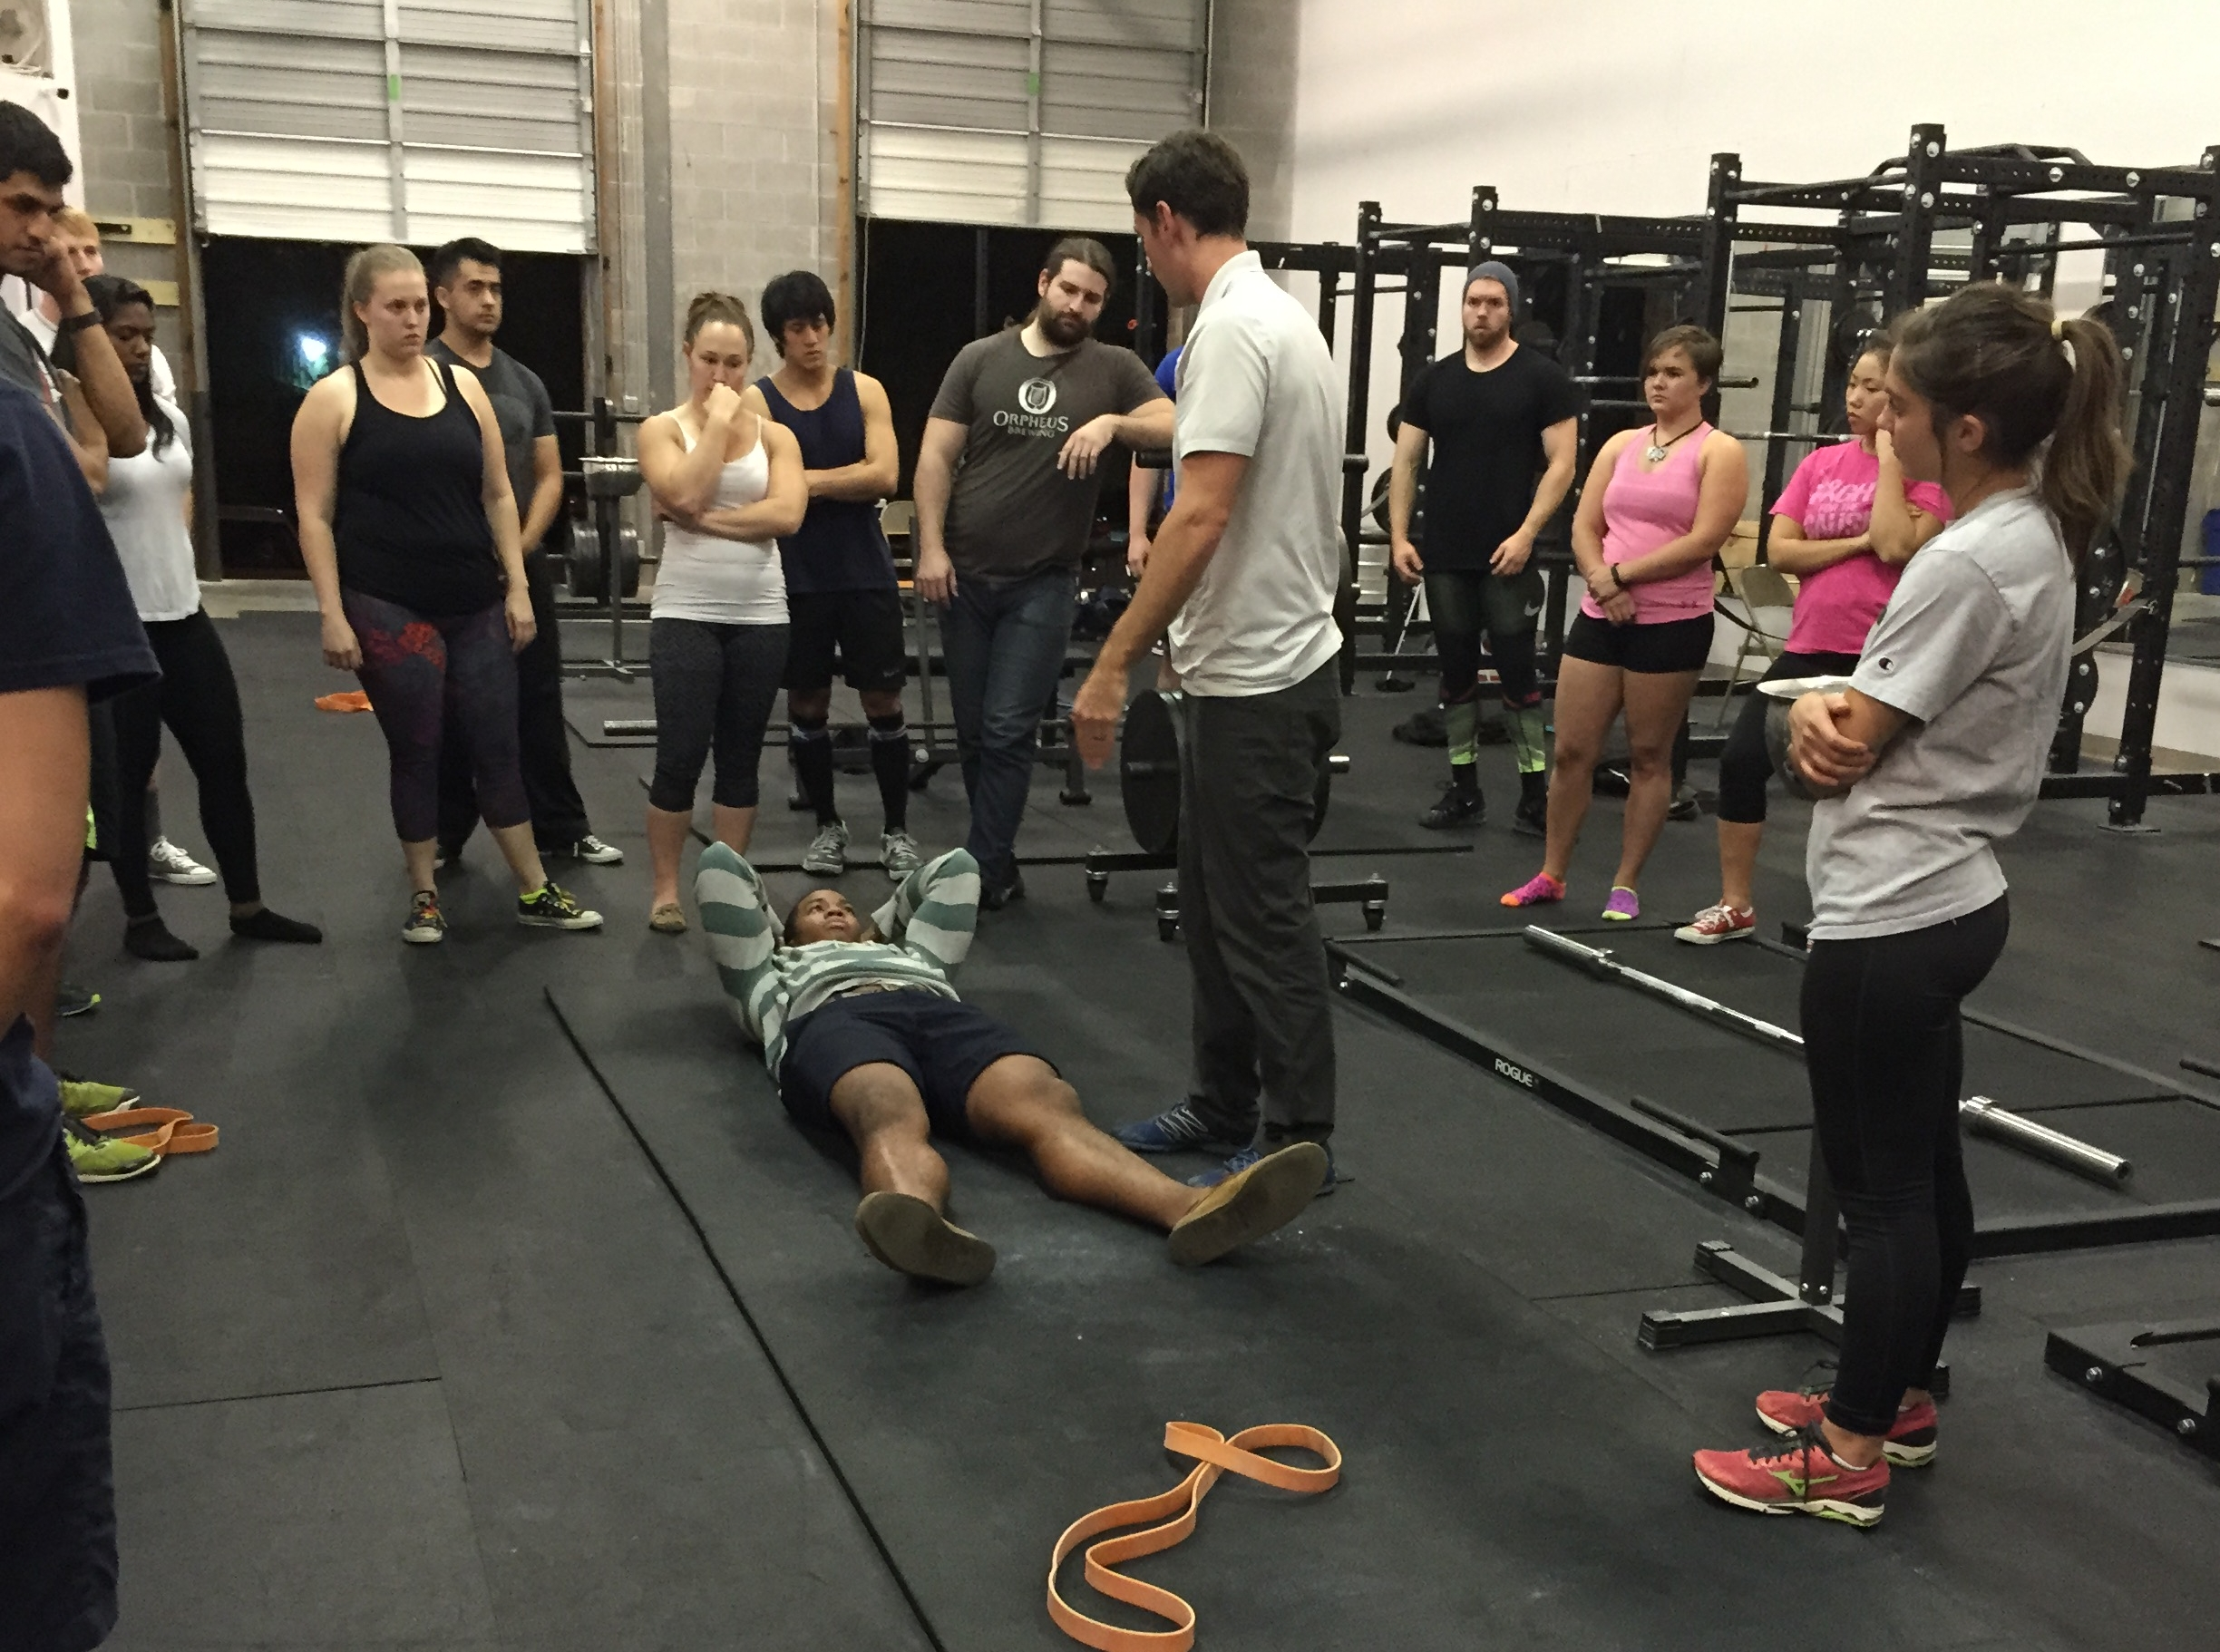 Dr. Danny Matta of MobilityWOD and Athletes Potential working mobility with GT Barbell.